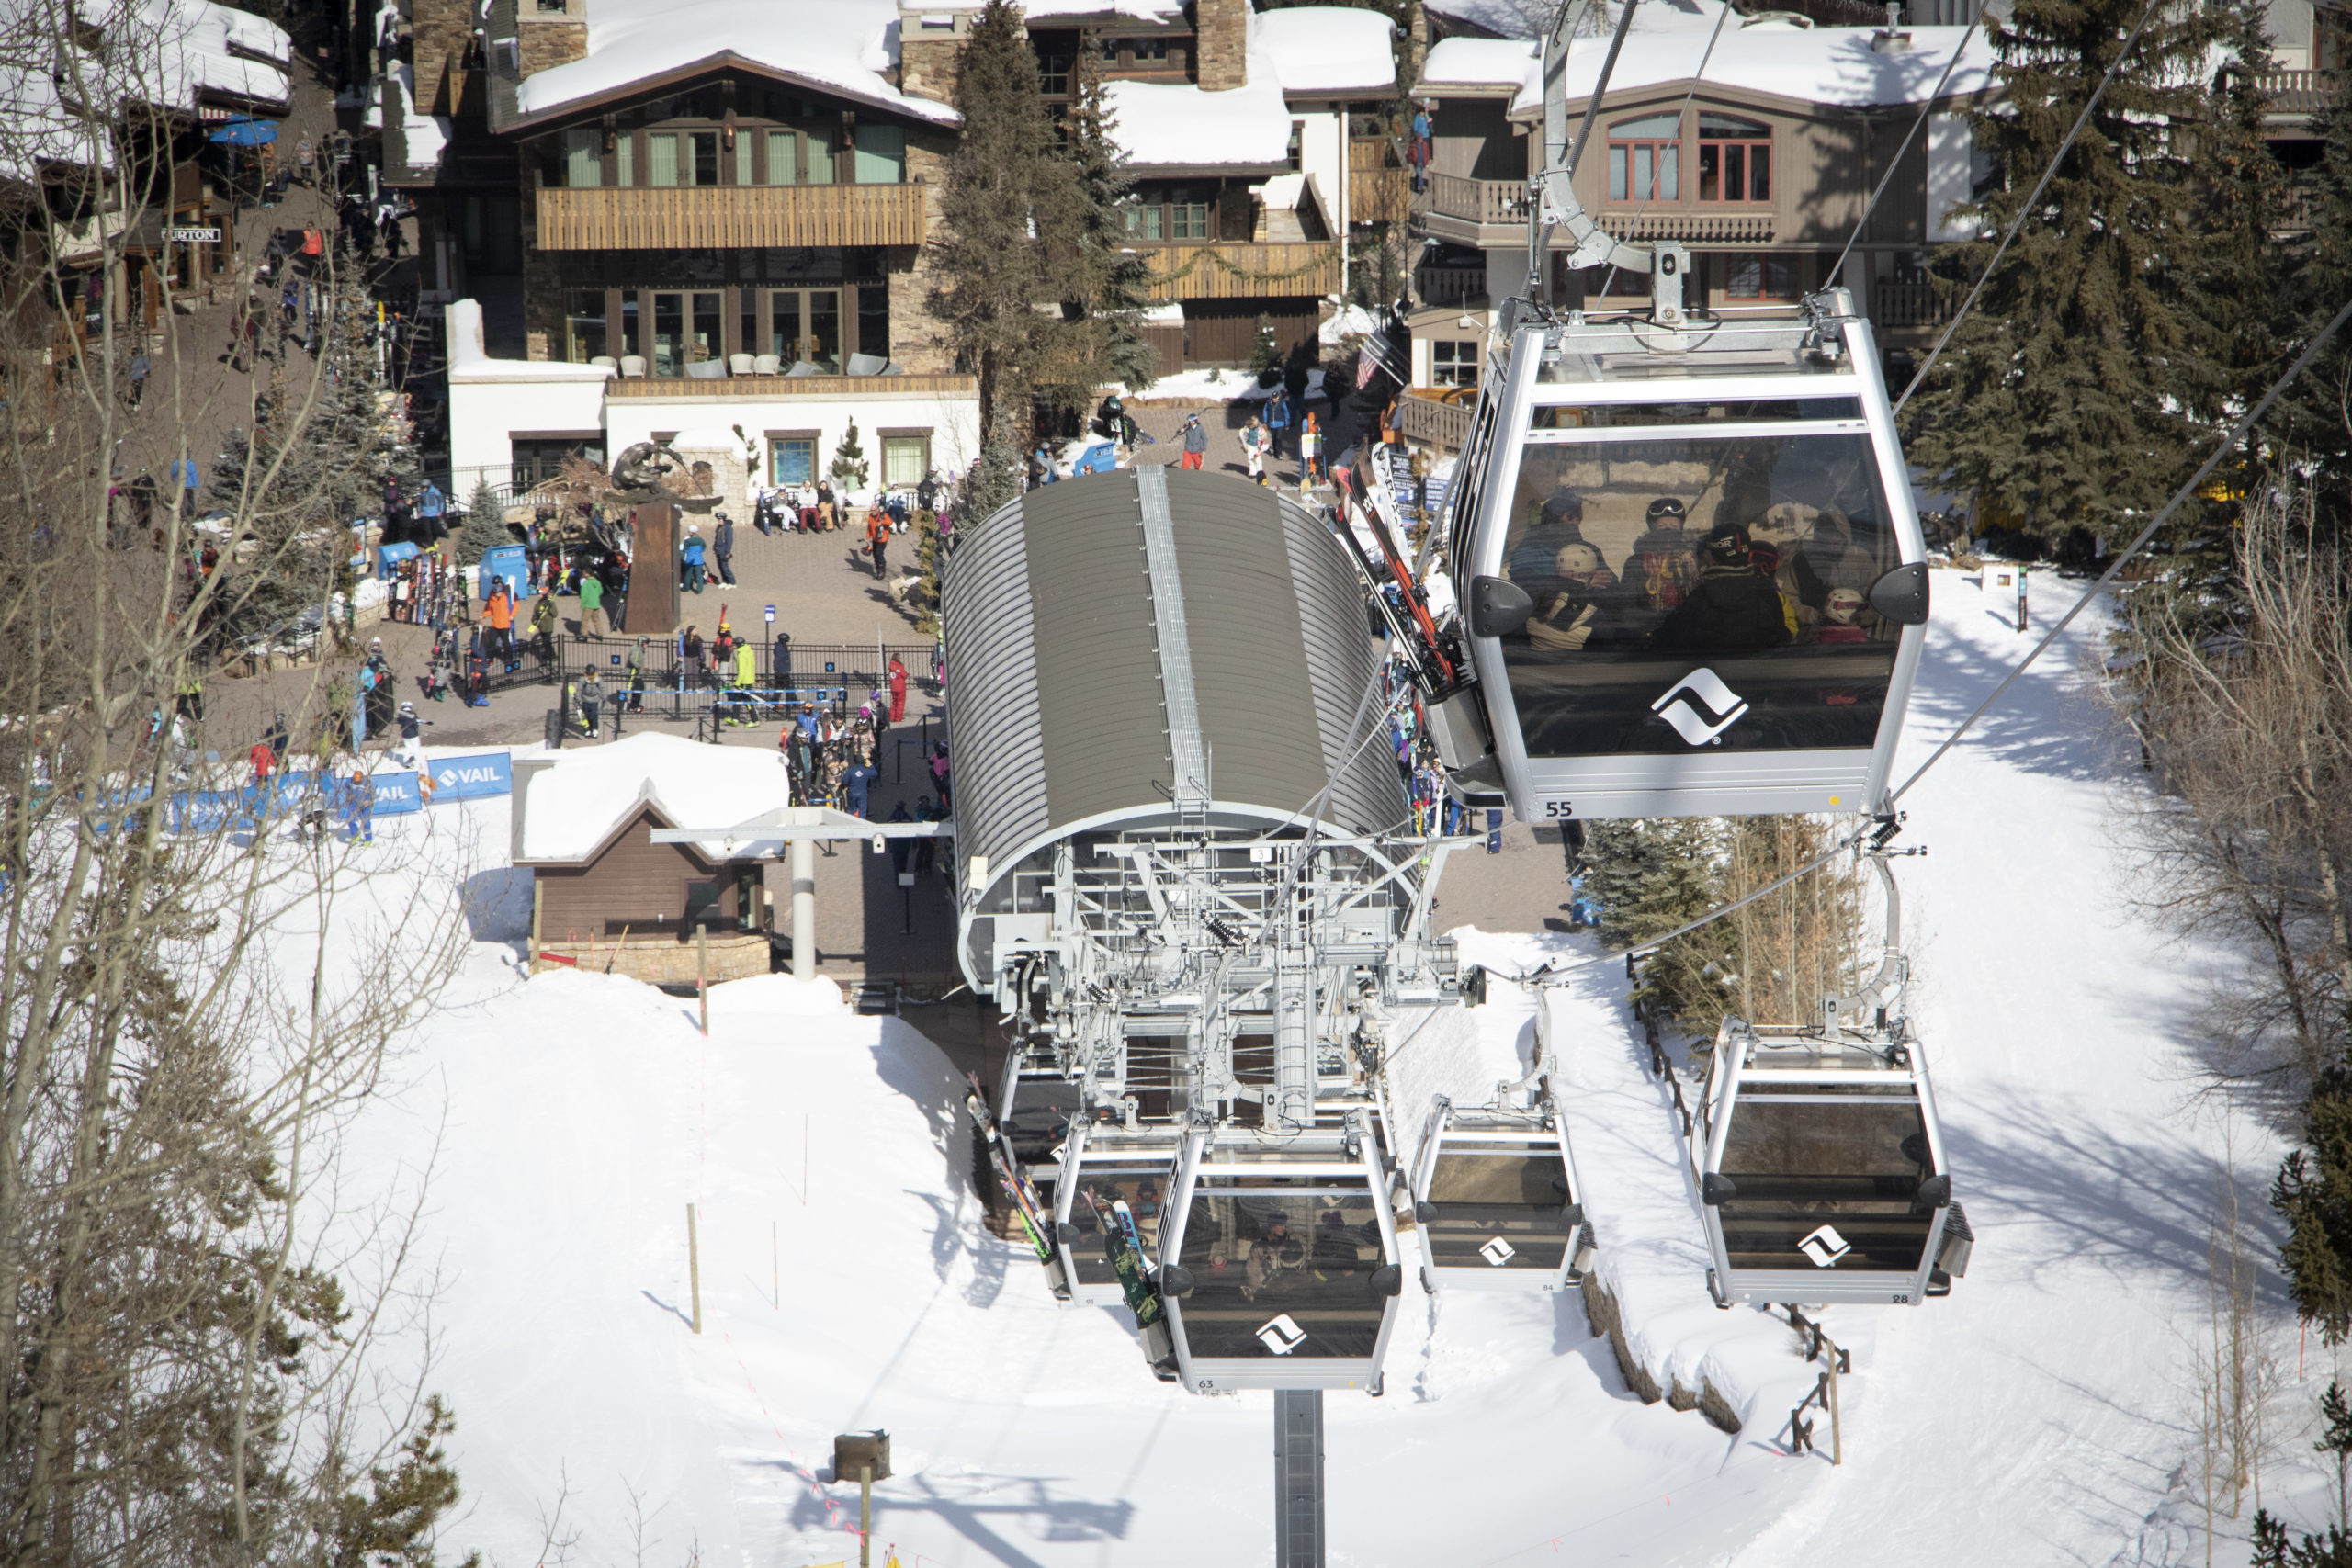 Gondola One ferried skiers and snowboarders up Vail Mountain on Saturday, Feb. 15, 2020.